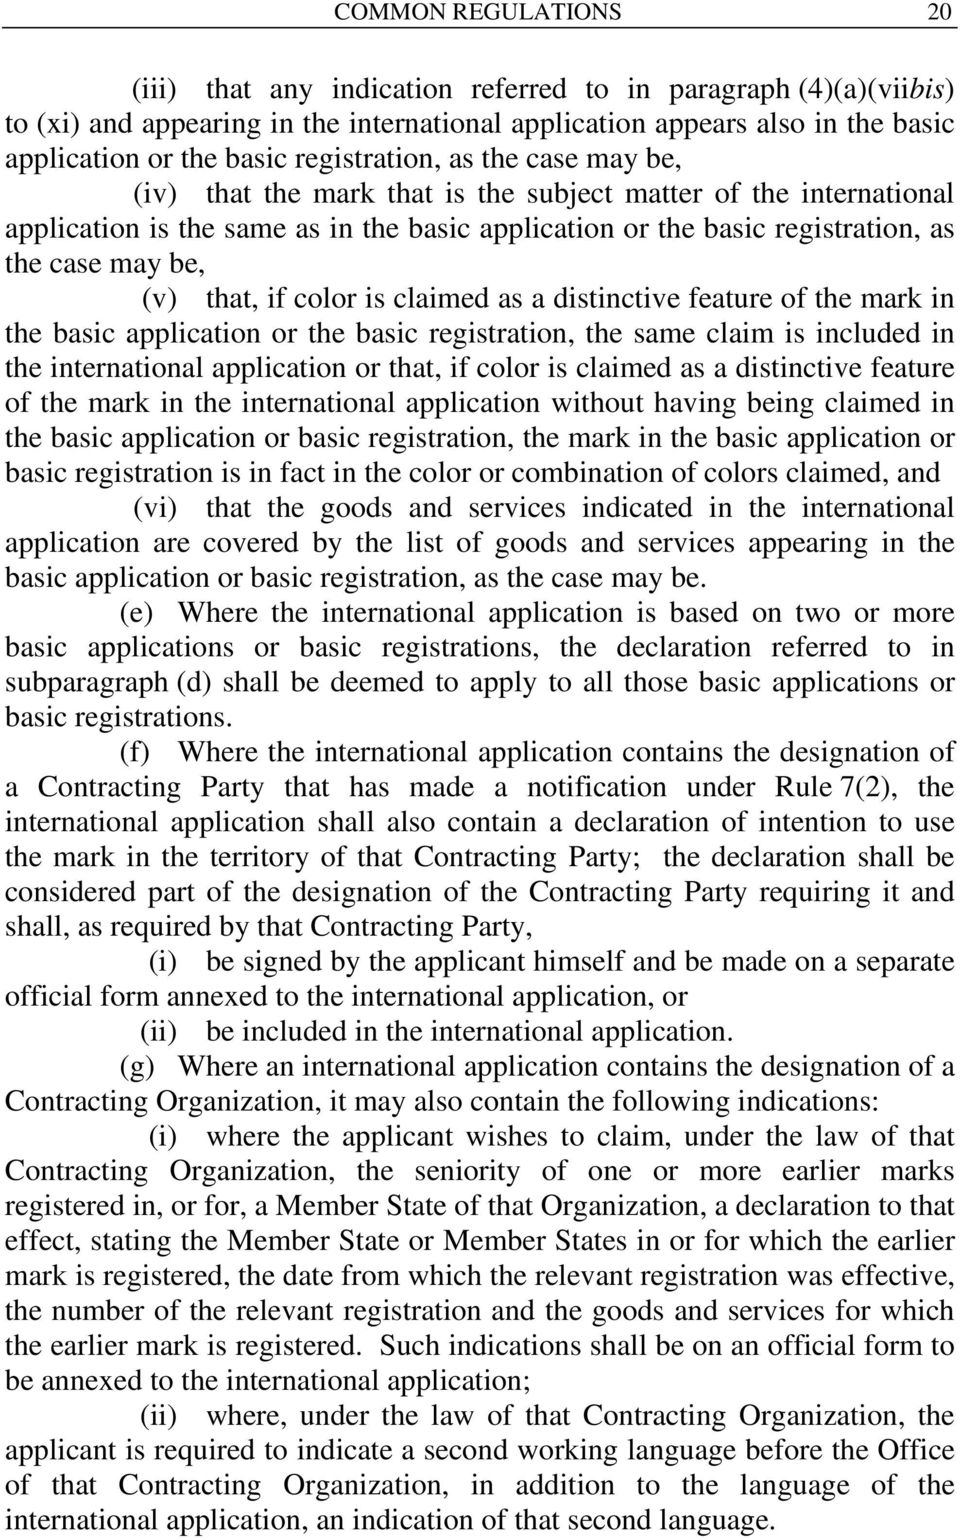 (v) that, if color is claimed as a distinctive feature of the mark in the basic application or the basic registration, the same claim is included in the international application or that, if color is